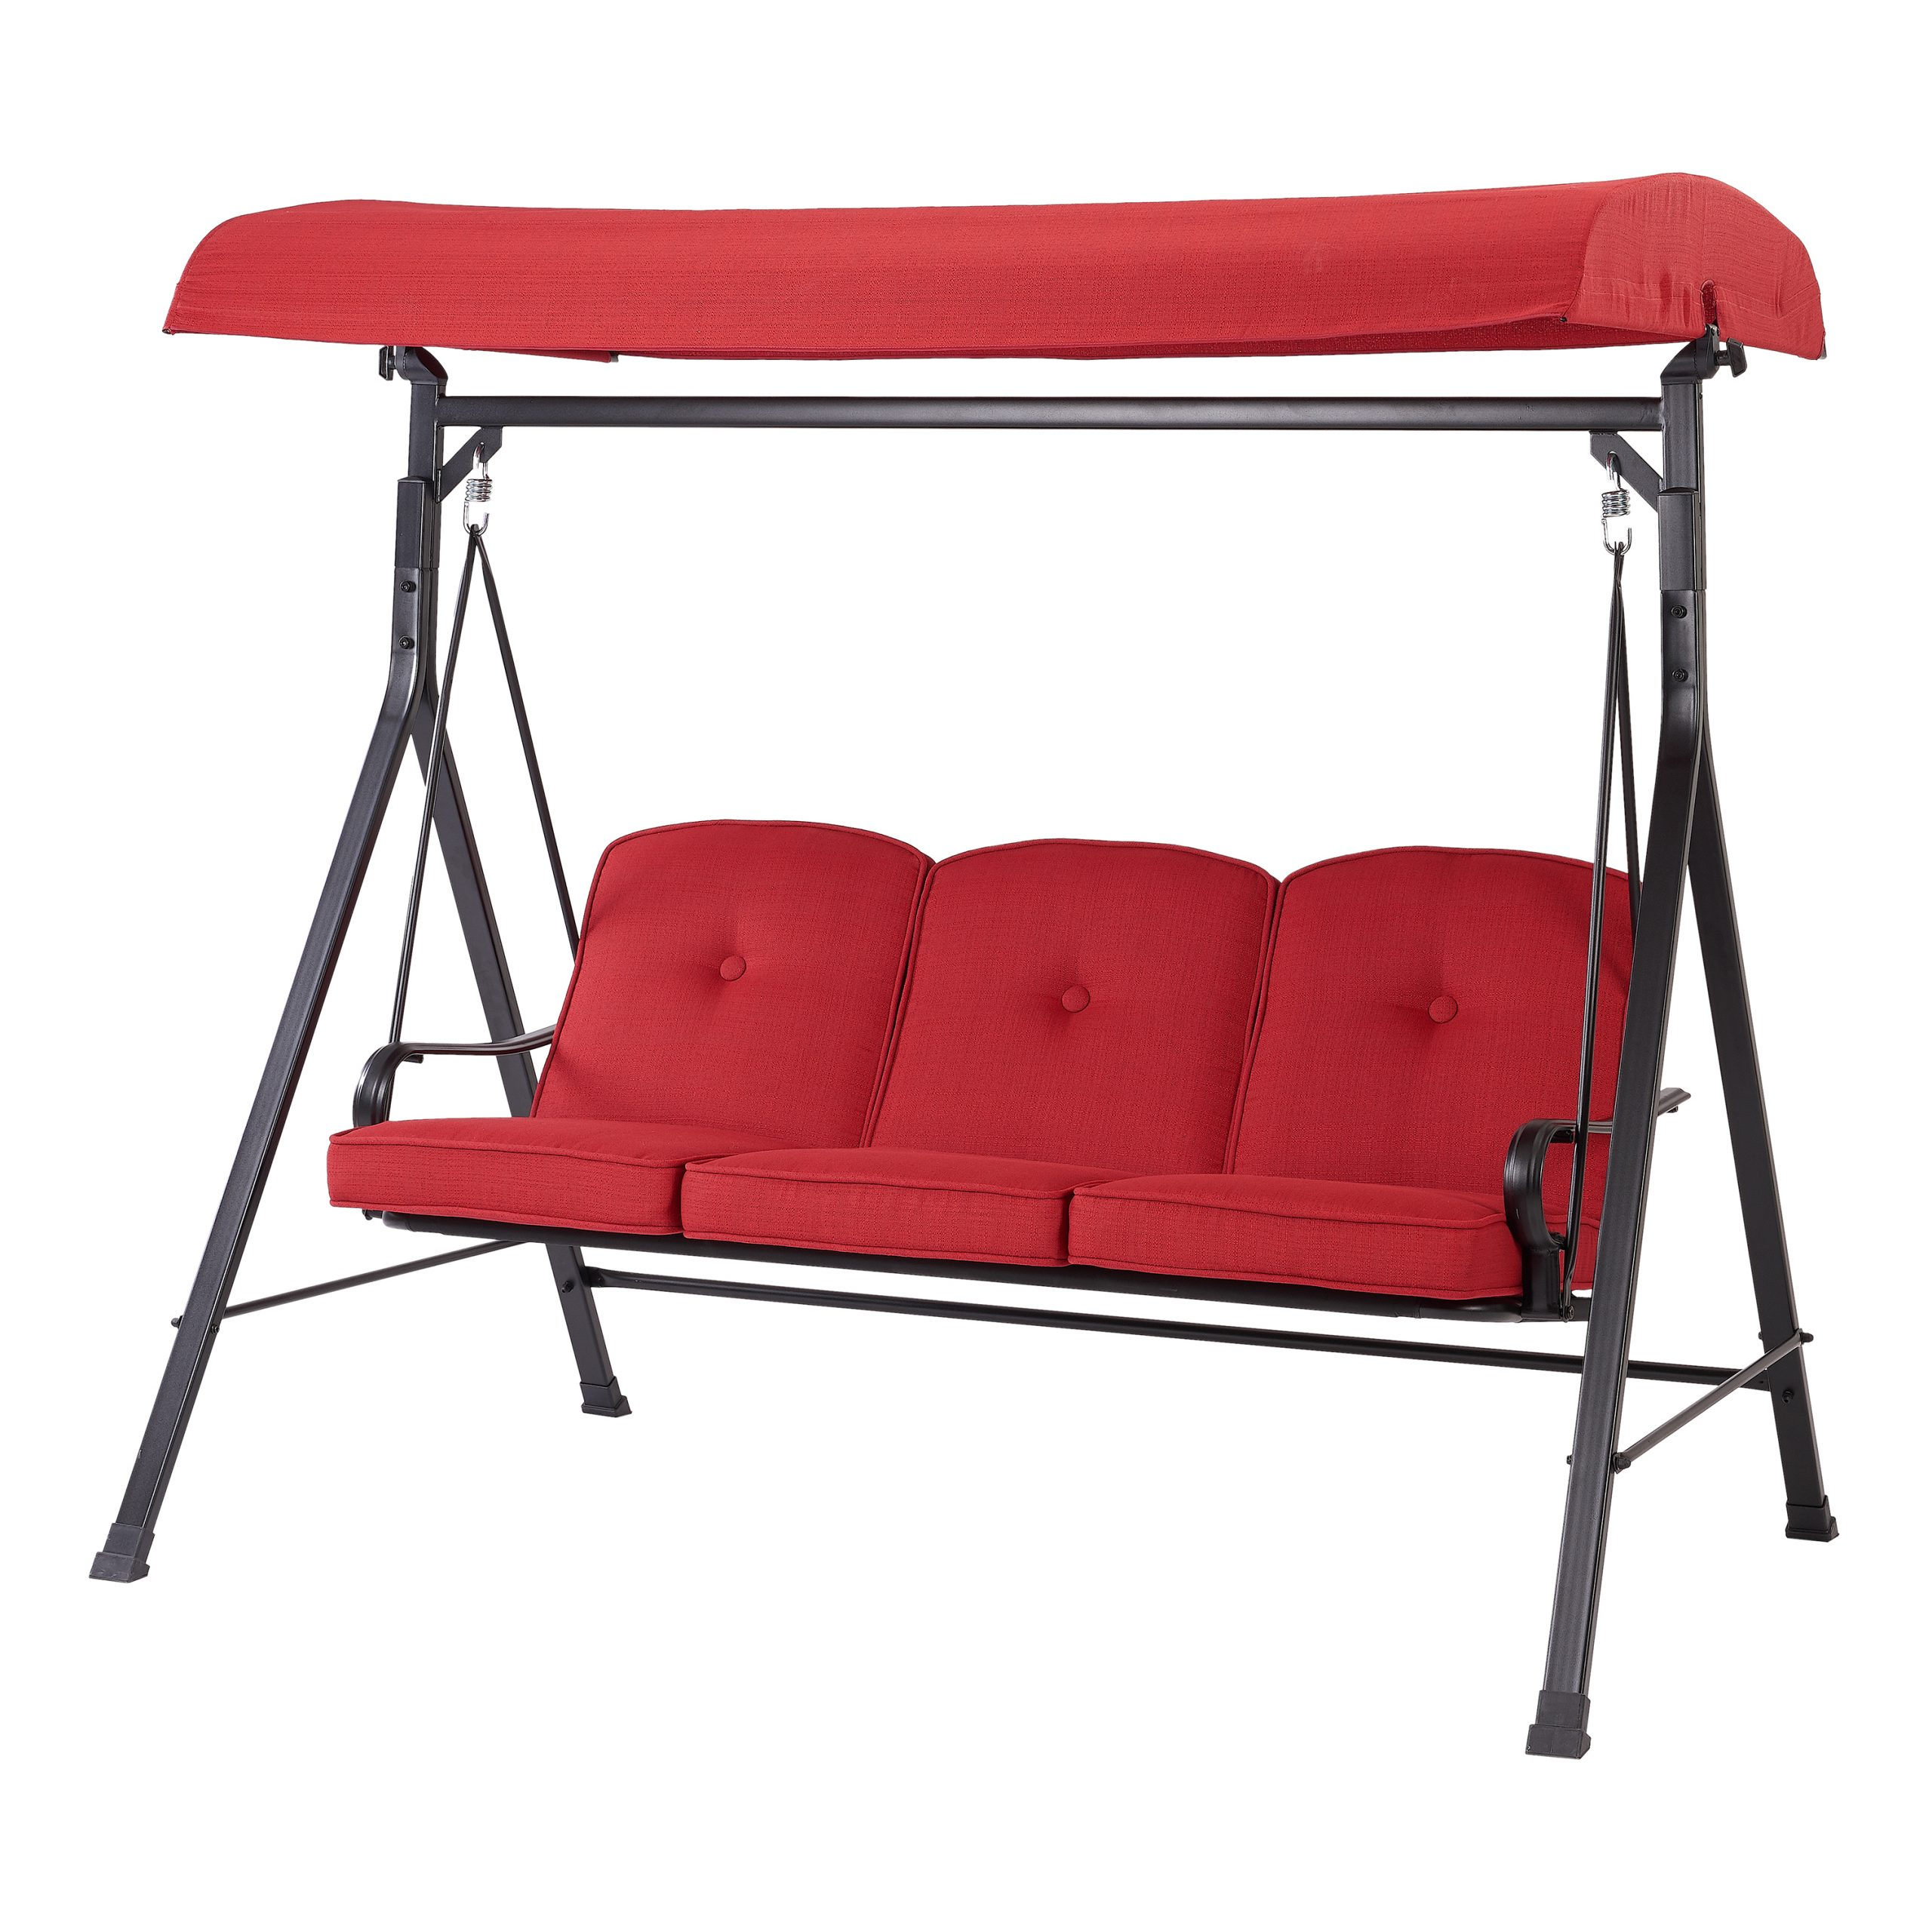 Mainstays Carson Creek Outdoor 3 Seat Porch Swing With Canopy, Red – Walmart In 3 Person Red With Brown Powder Coated Frame Steel Outdoor Swings (View 6 of 25)